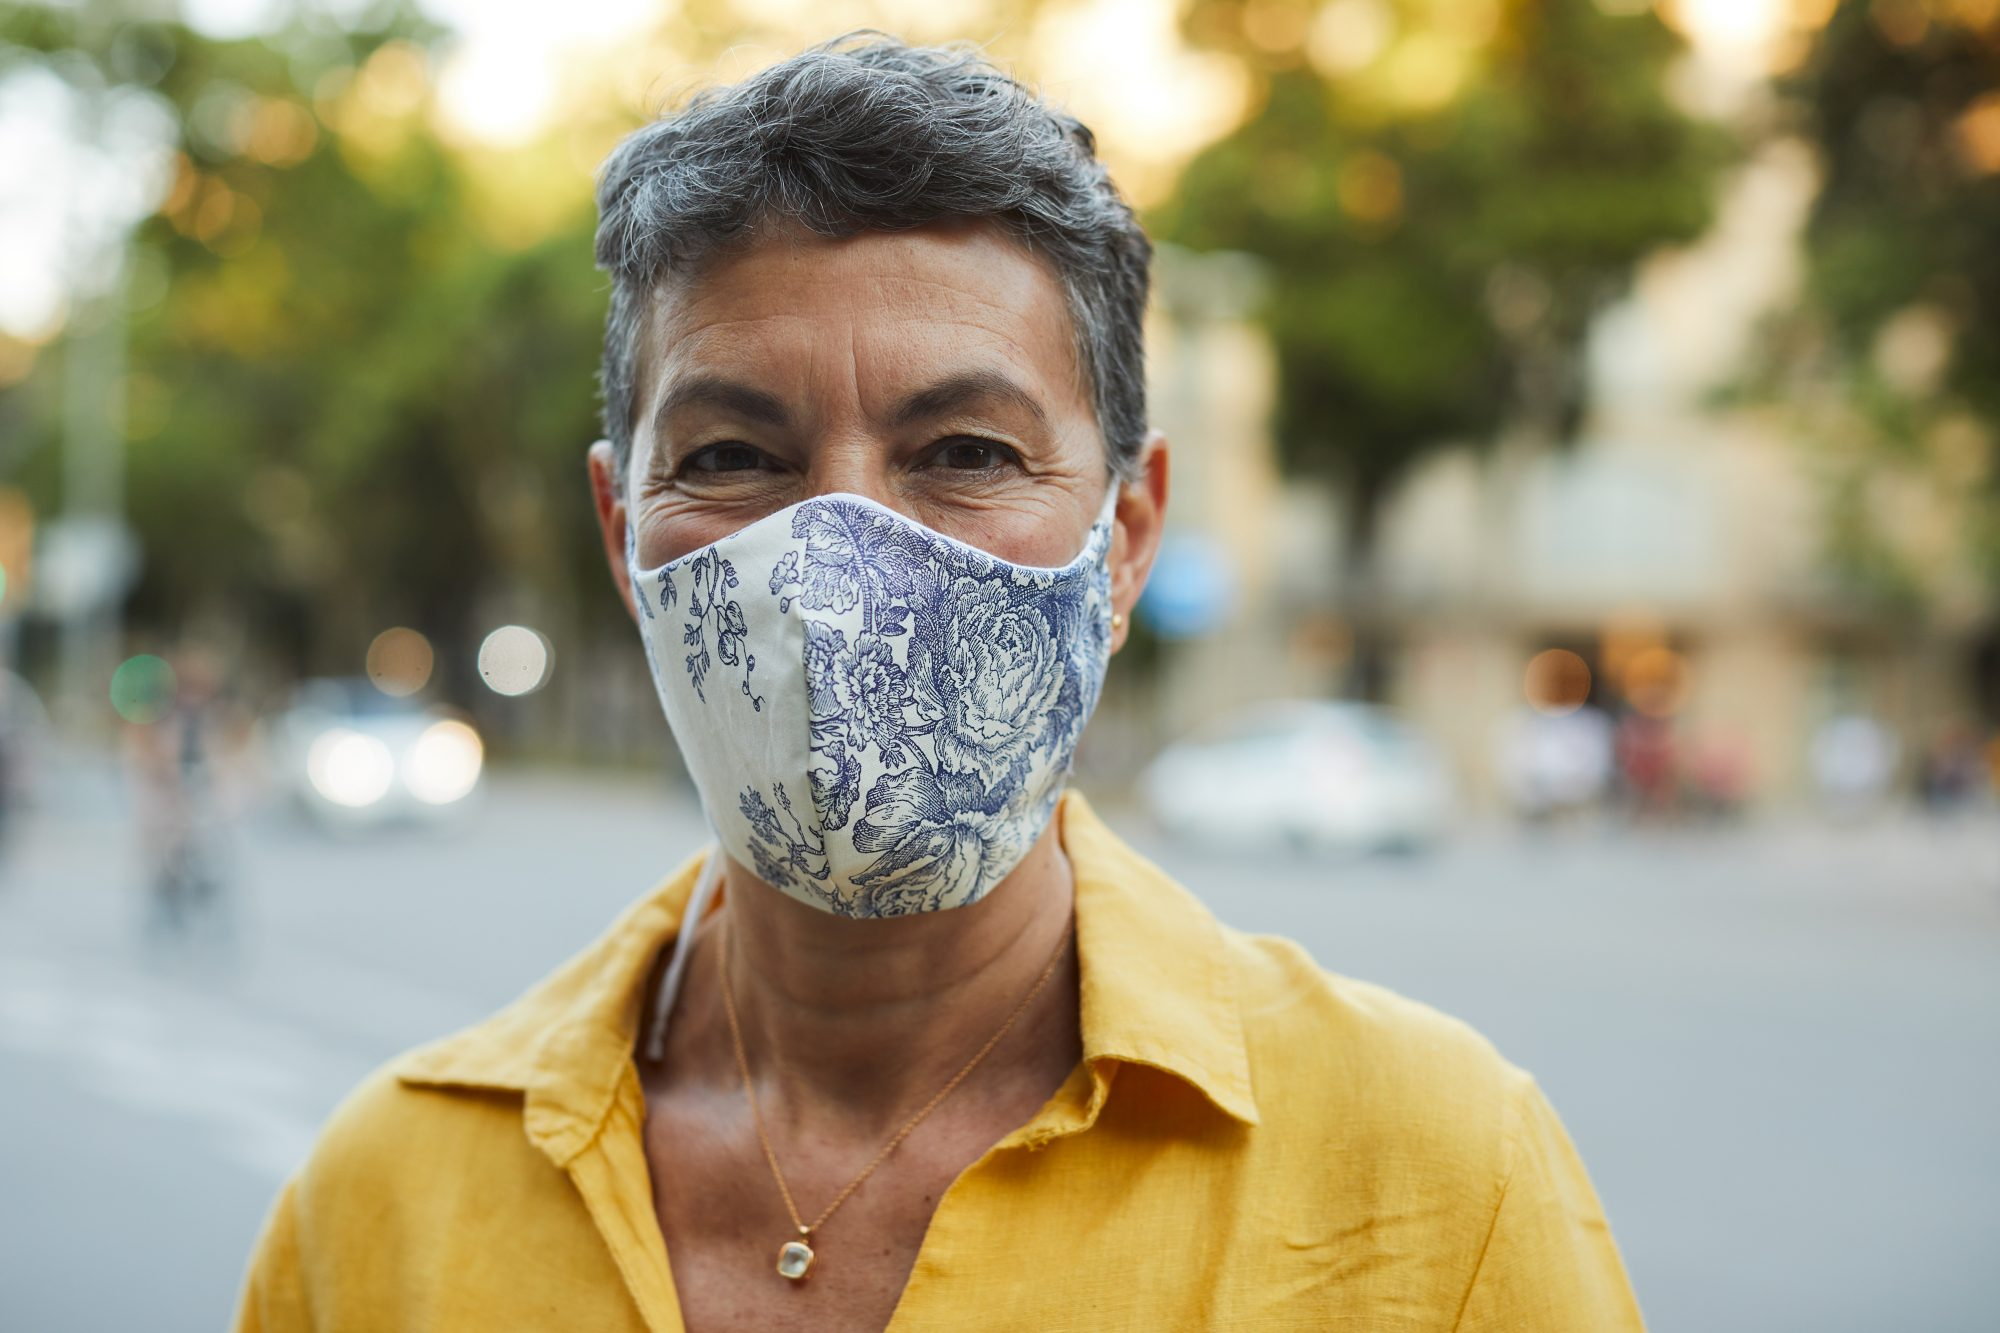 woman wearing blue and white face mask